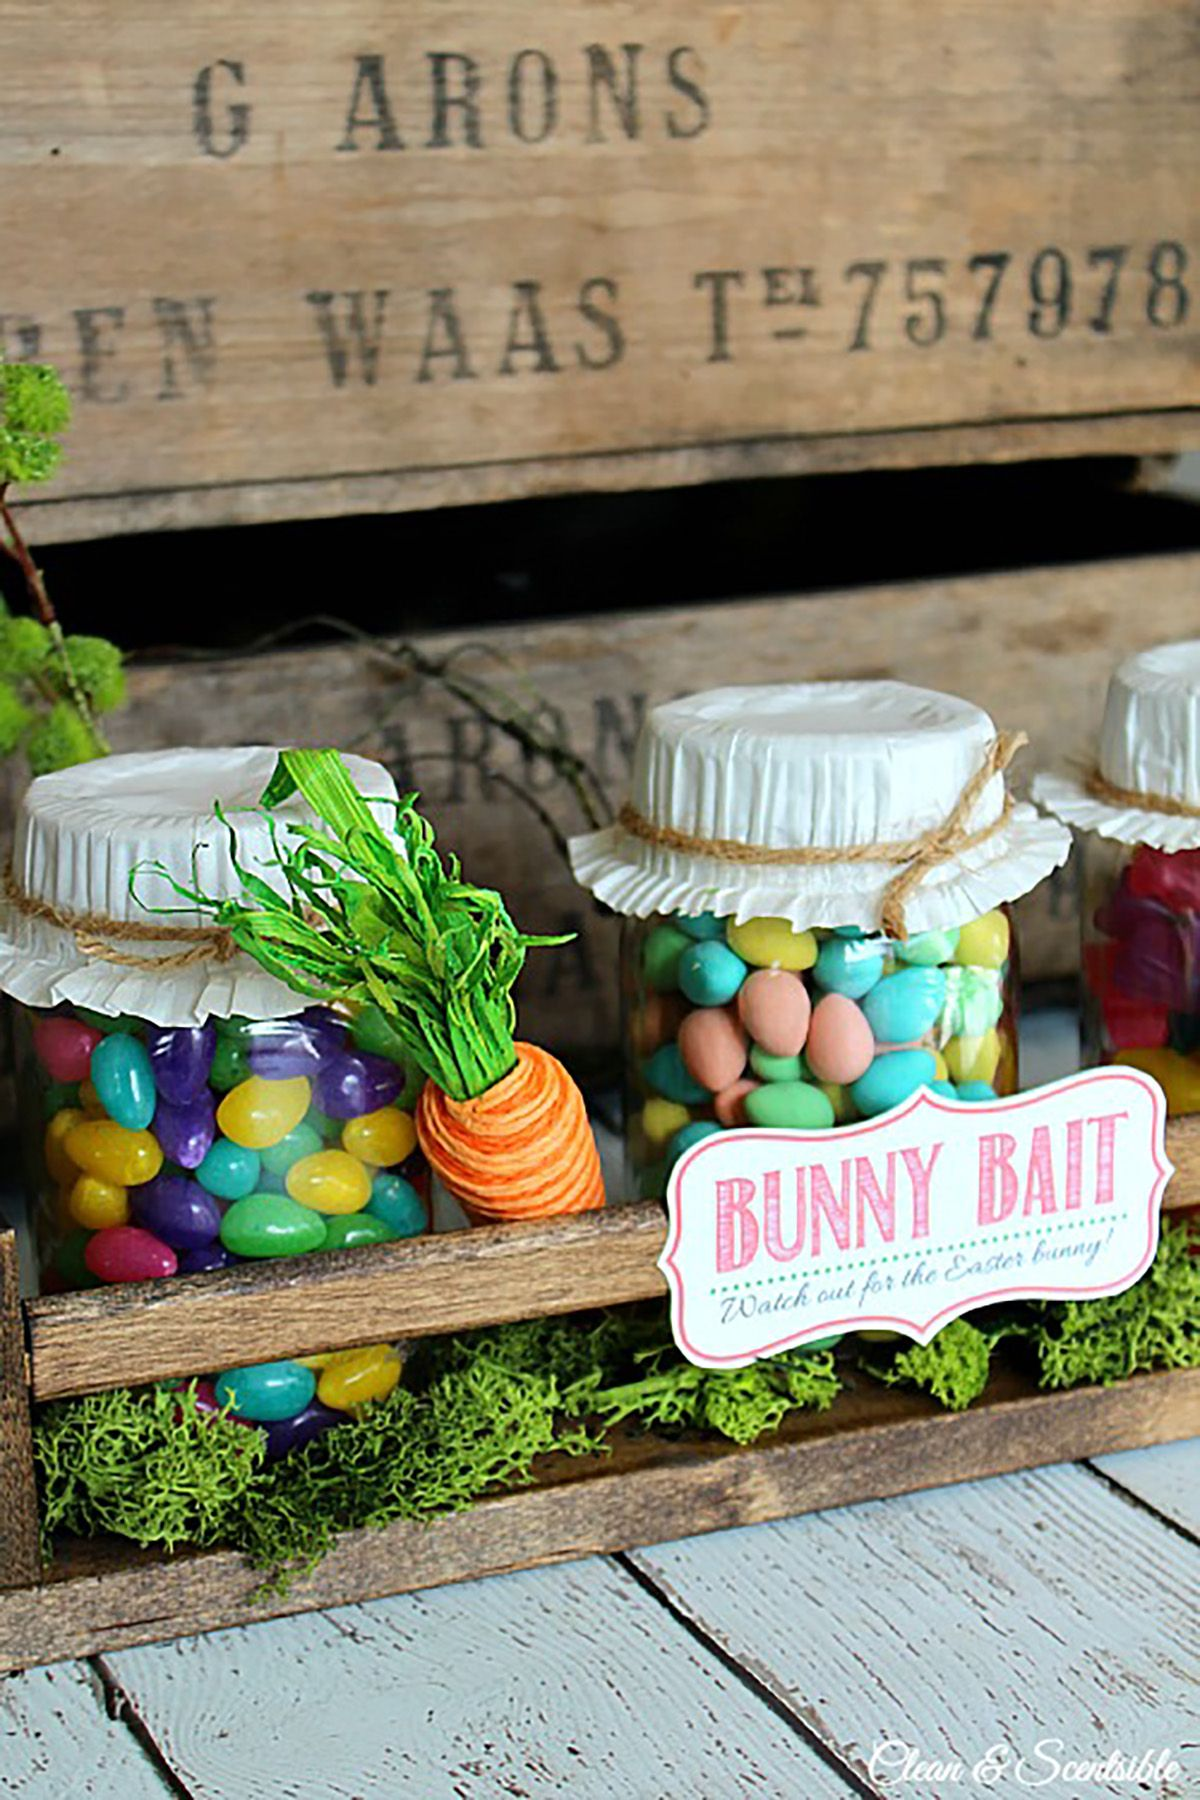 46 easy easter crafts ideas for easter diy decorations gifts 46 easy easter crafts ideas for easter diy decorations gifts country living negle Choice Image